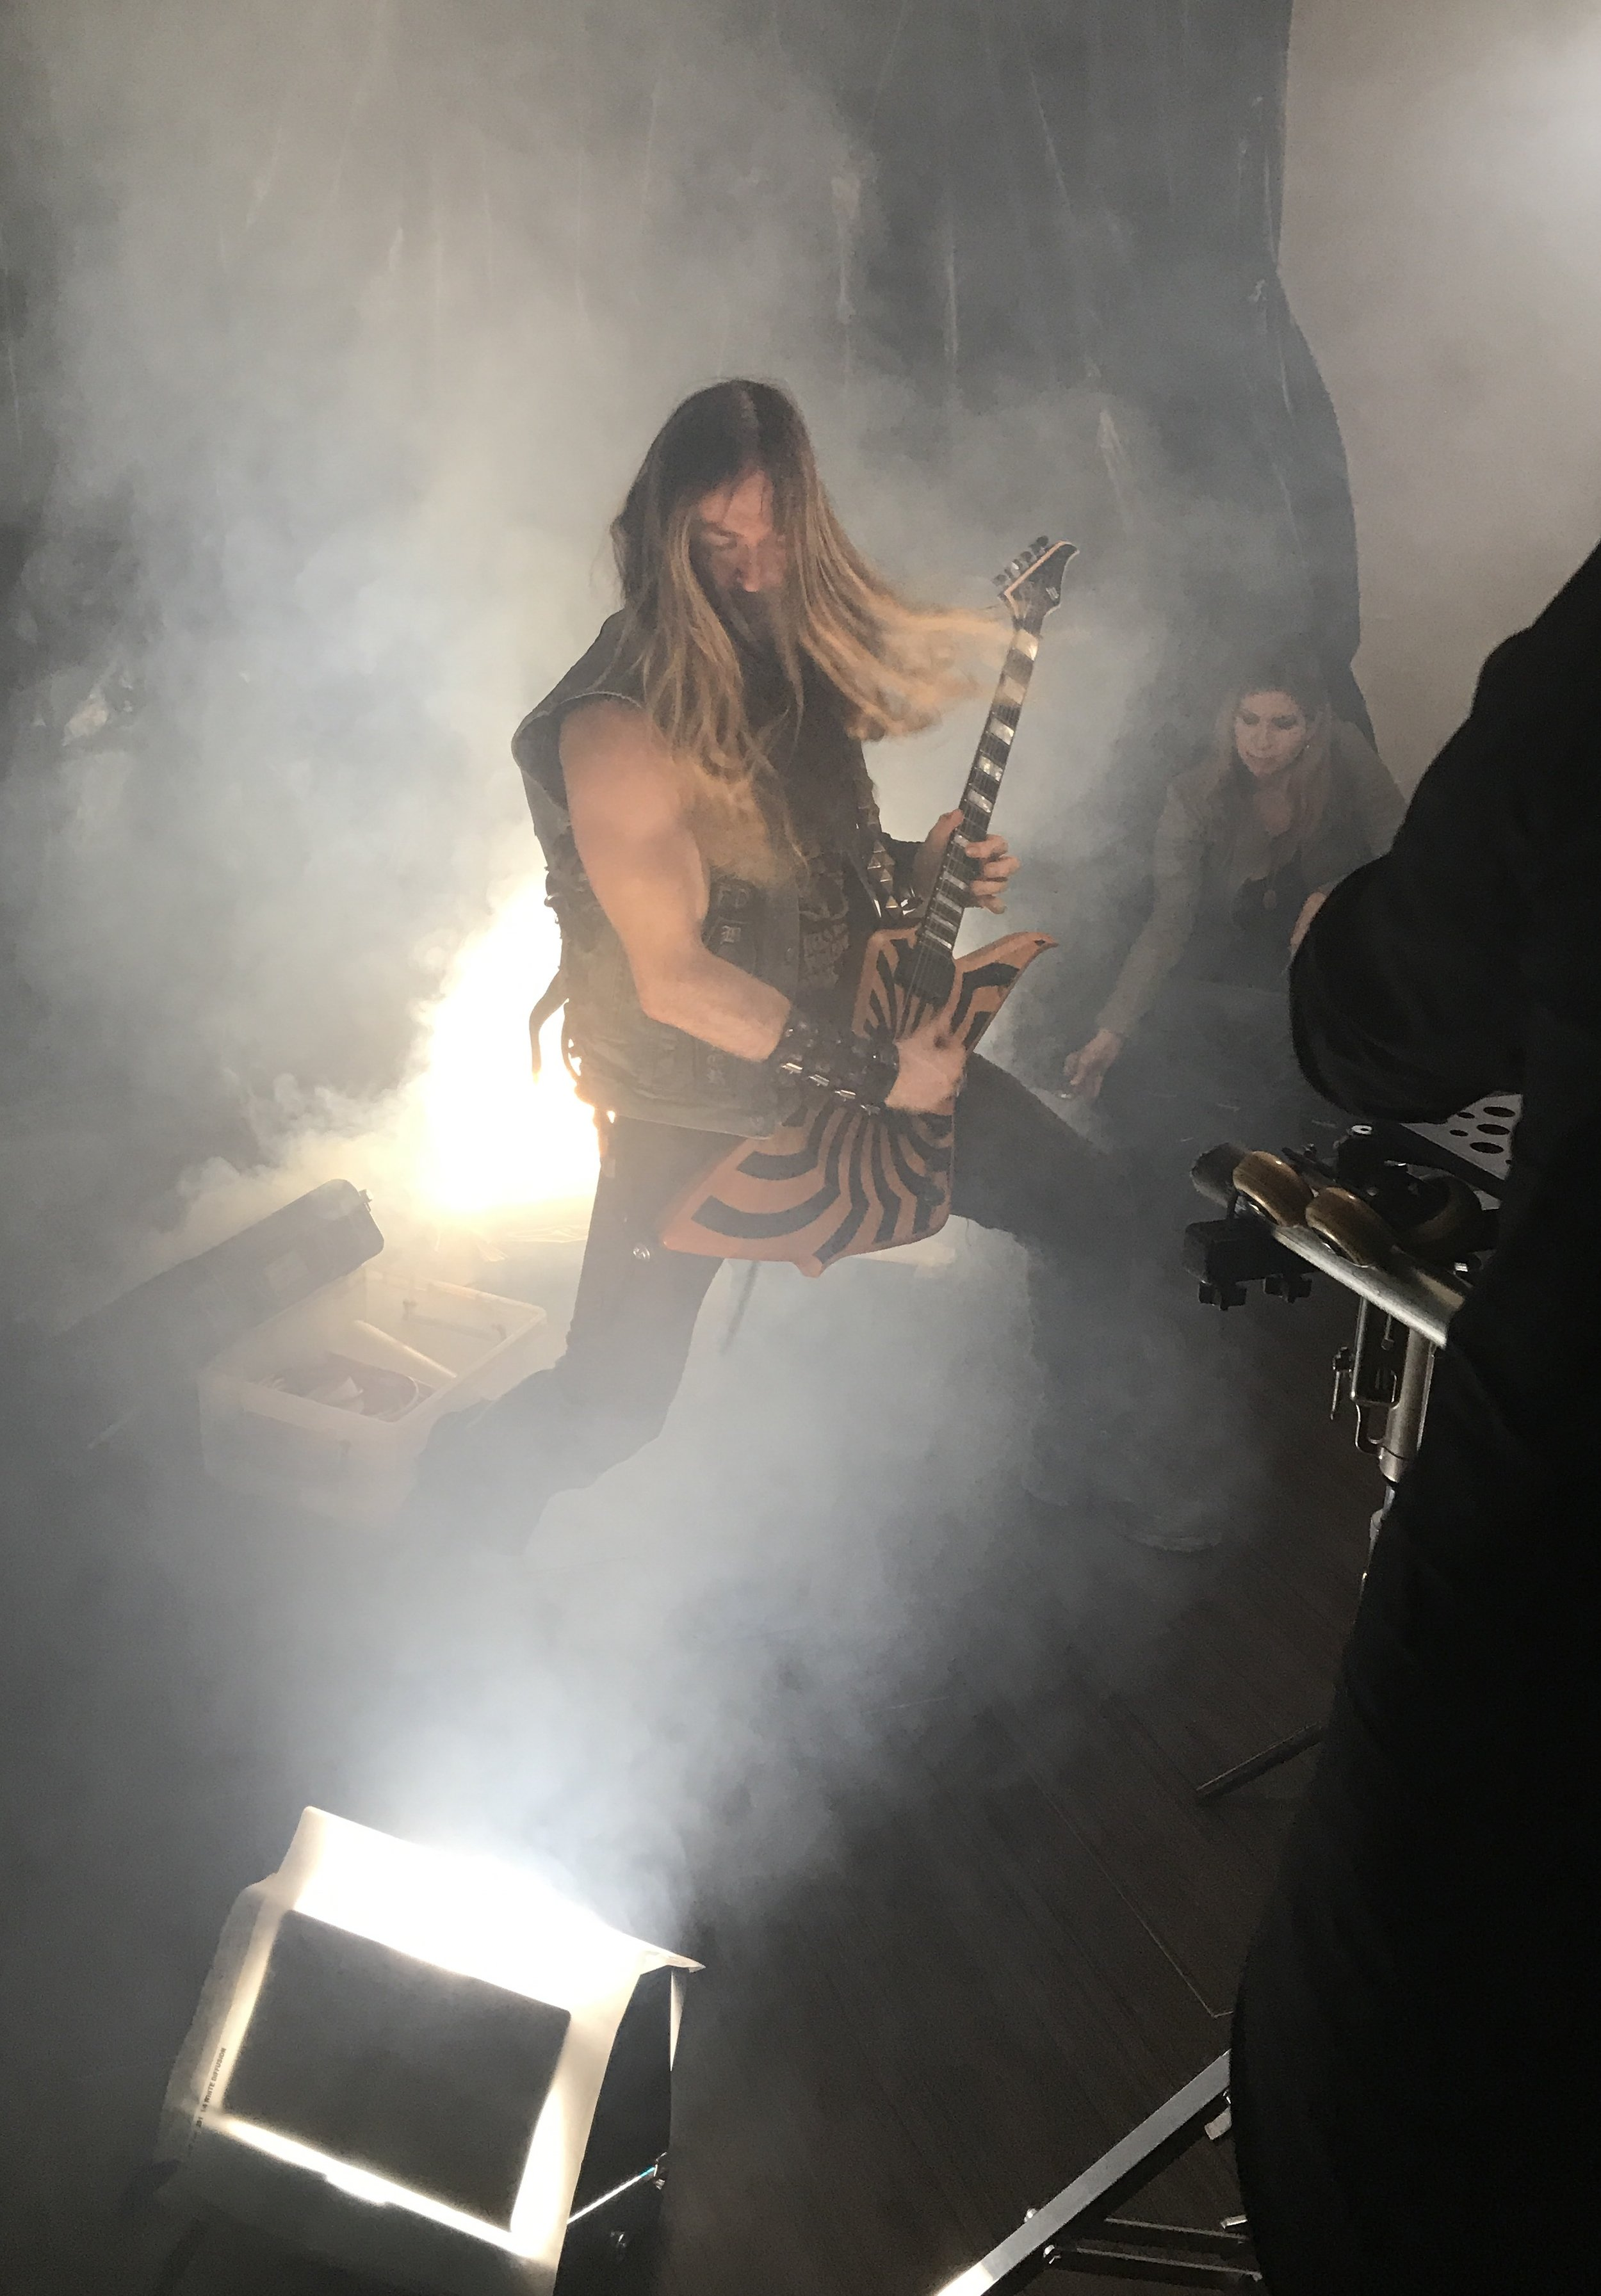 Zakk Wylde tearing it up on set of '   Un-Natural Disaster   ' video shoot!